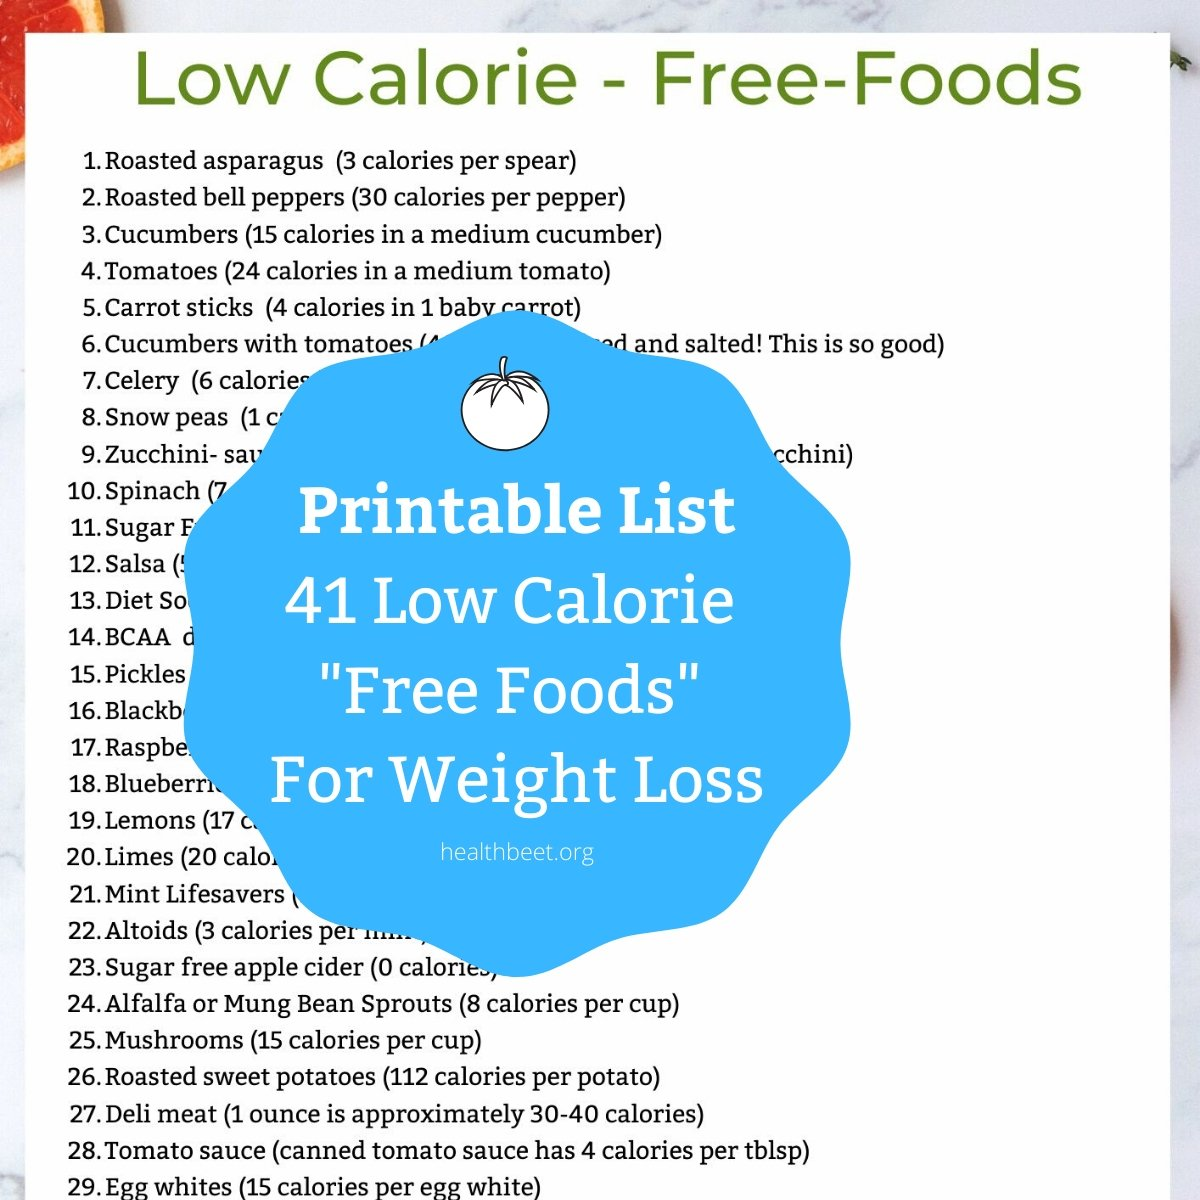 printable list of free foods for weight loss